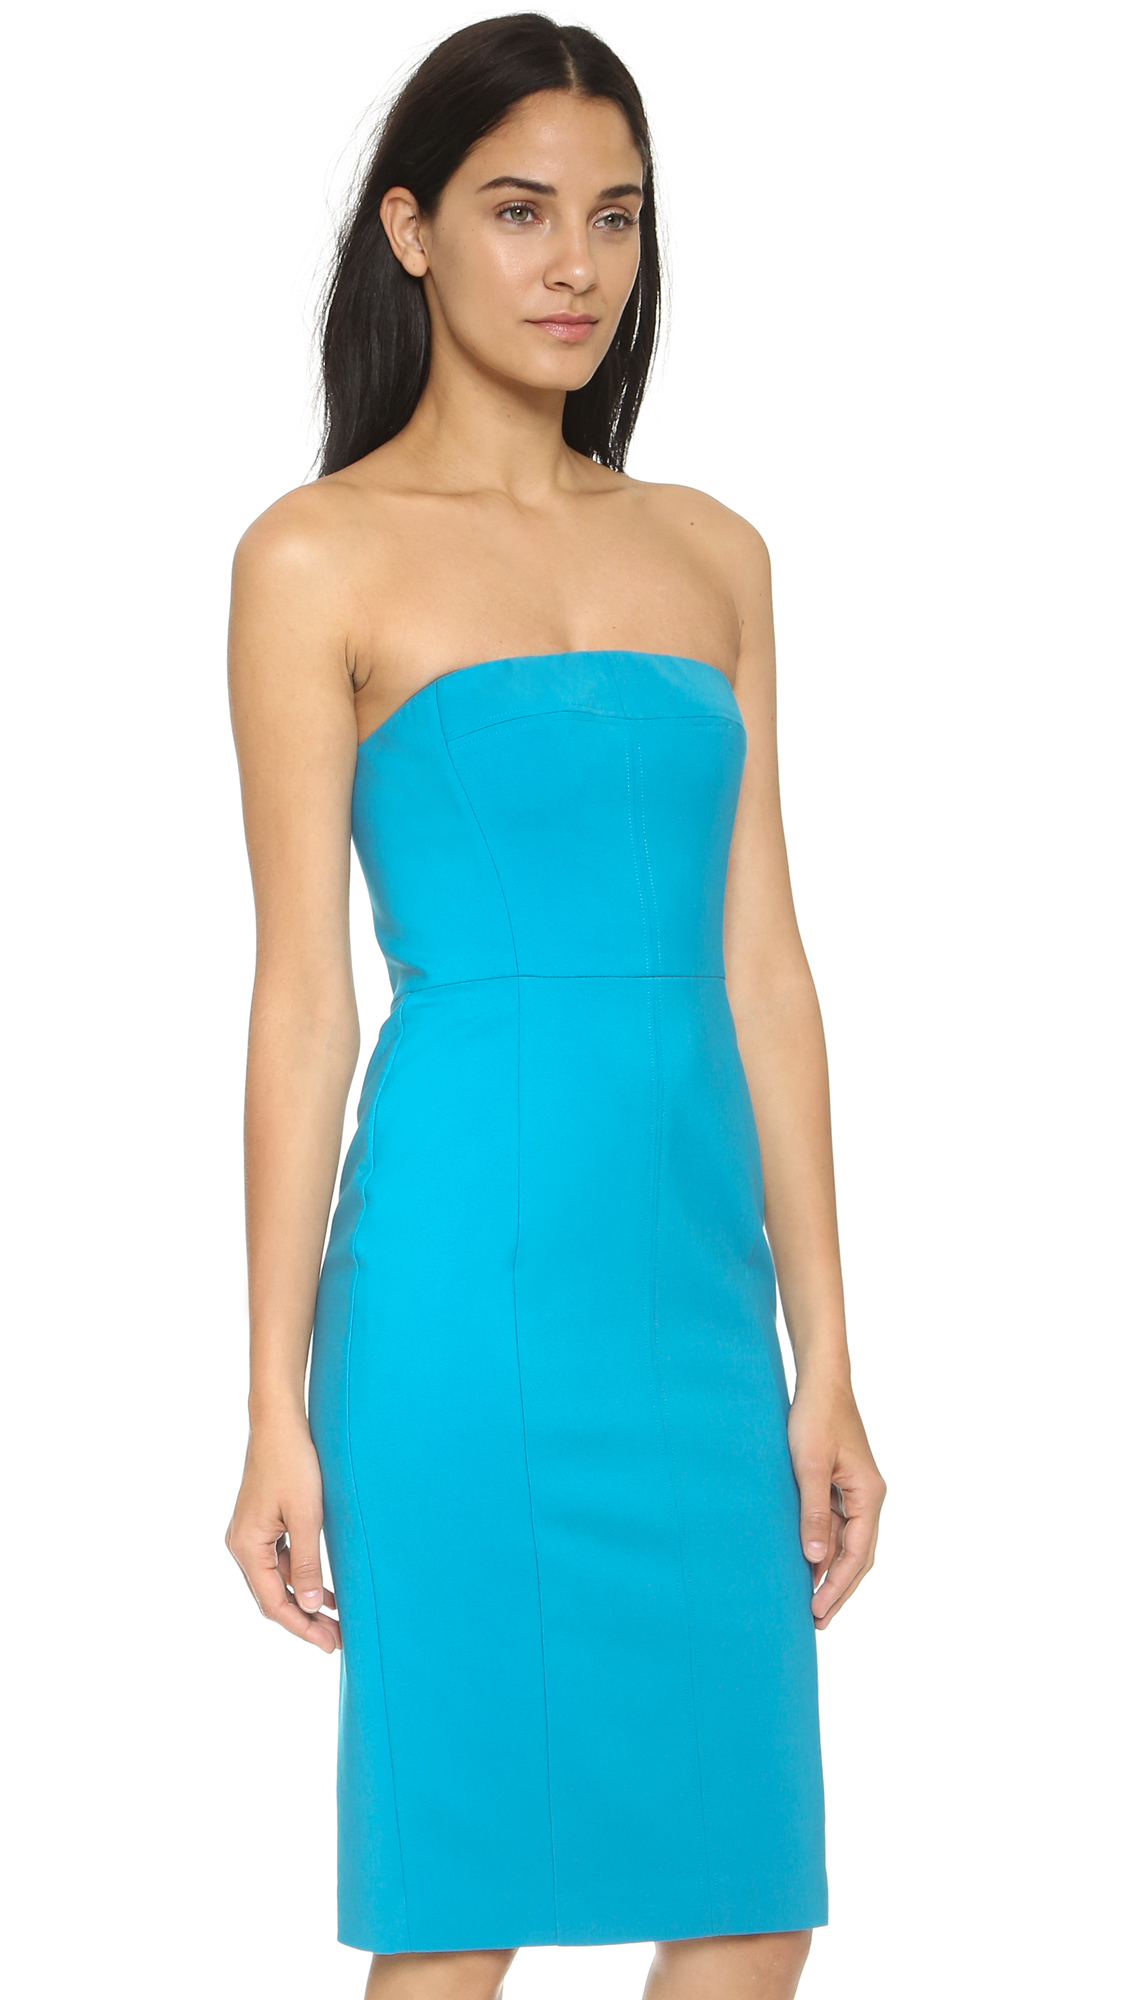 Black halo Oslen Strapless Sheath Dress - Candy Apple in Blue | Lyst